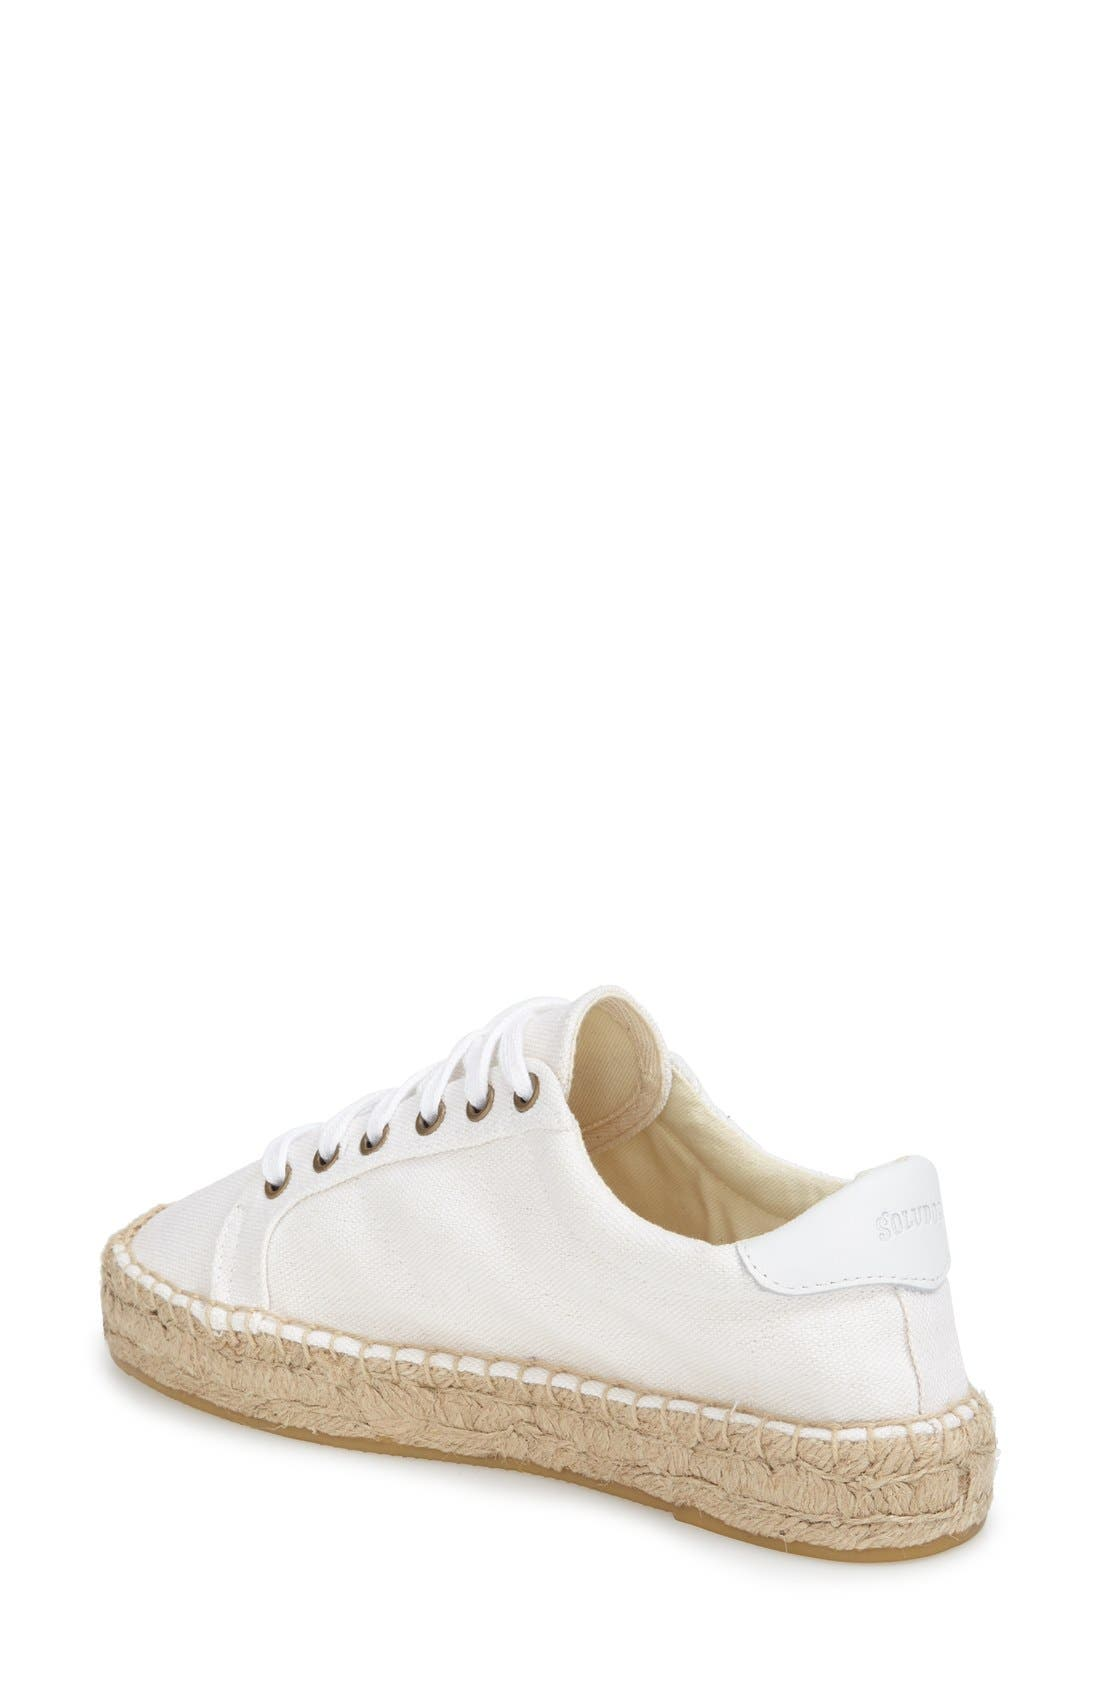 Espadrille Platform Sneaker,                             Alternate thumbnail 2, color,                             Bright White Canvas